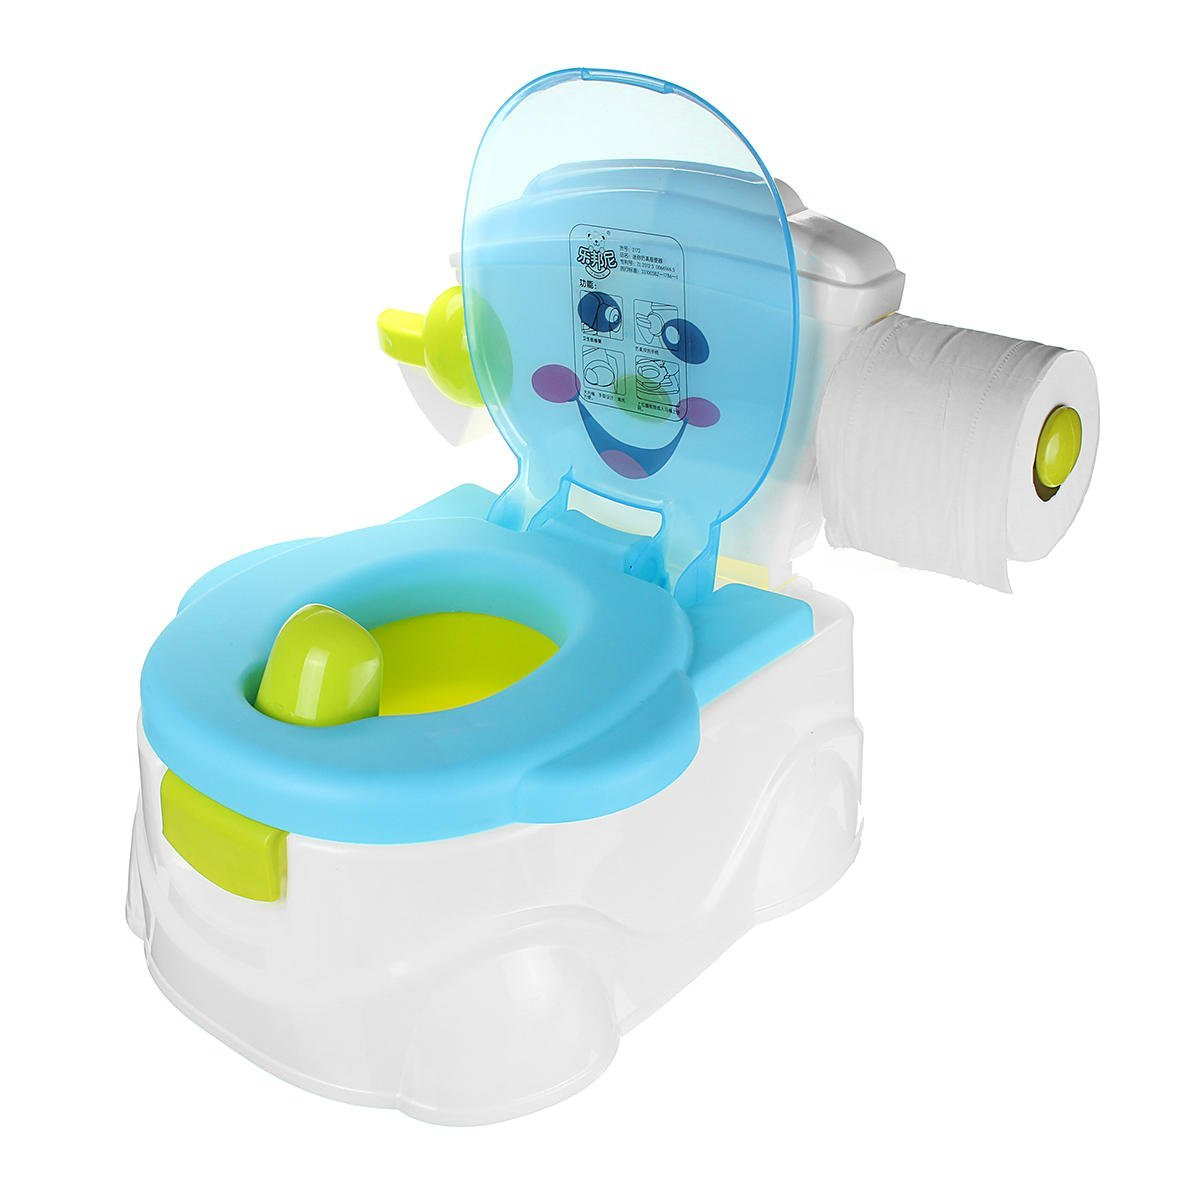 Infant Lavatory Flight Simulator - In1 Portable Music Kid Baby Toilet Trainer Child Toddler Potty Training Seat Chair - Immature Pamper Stool Cocker Facility Bathroom Link - 1PCs